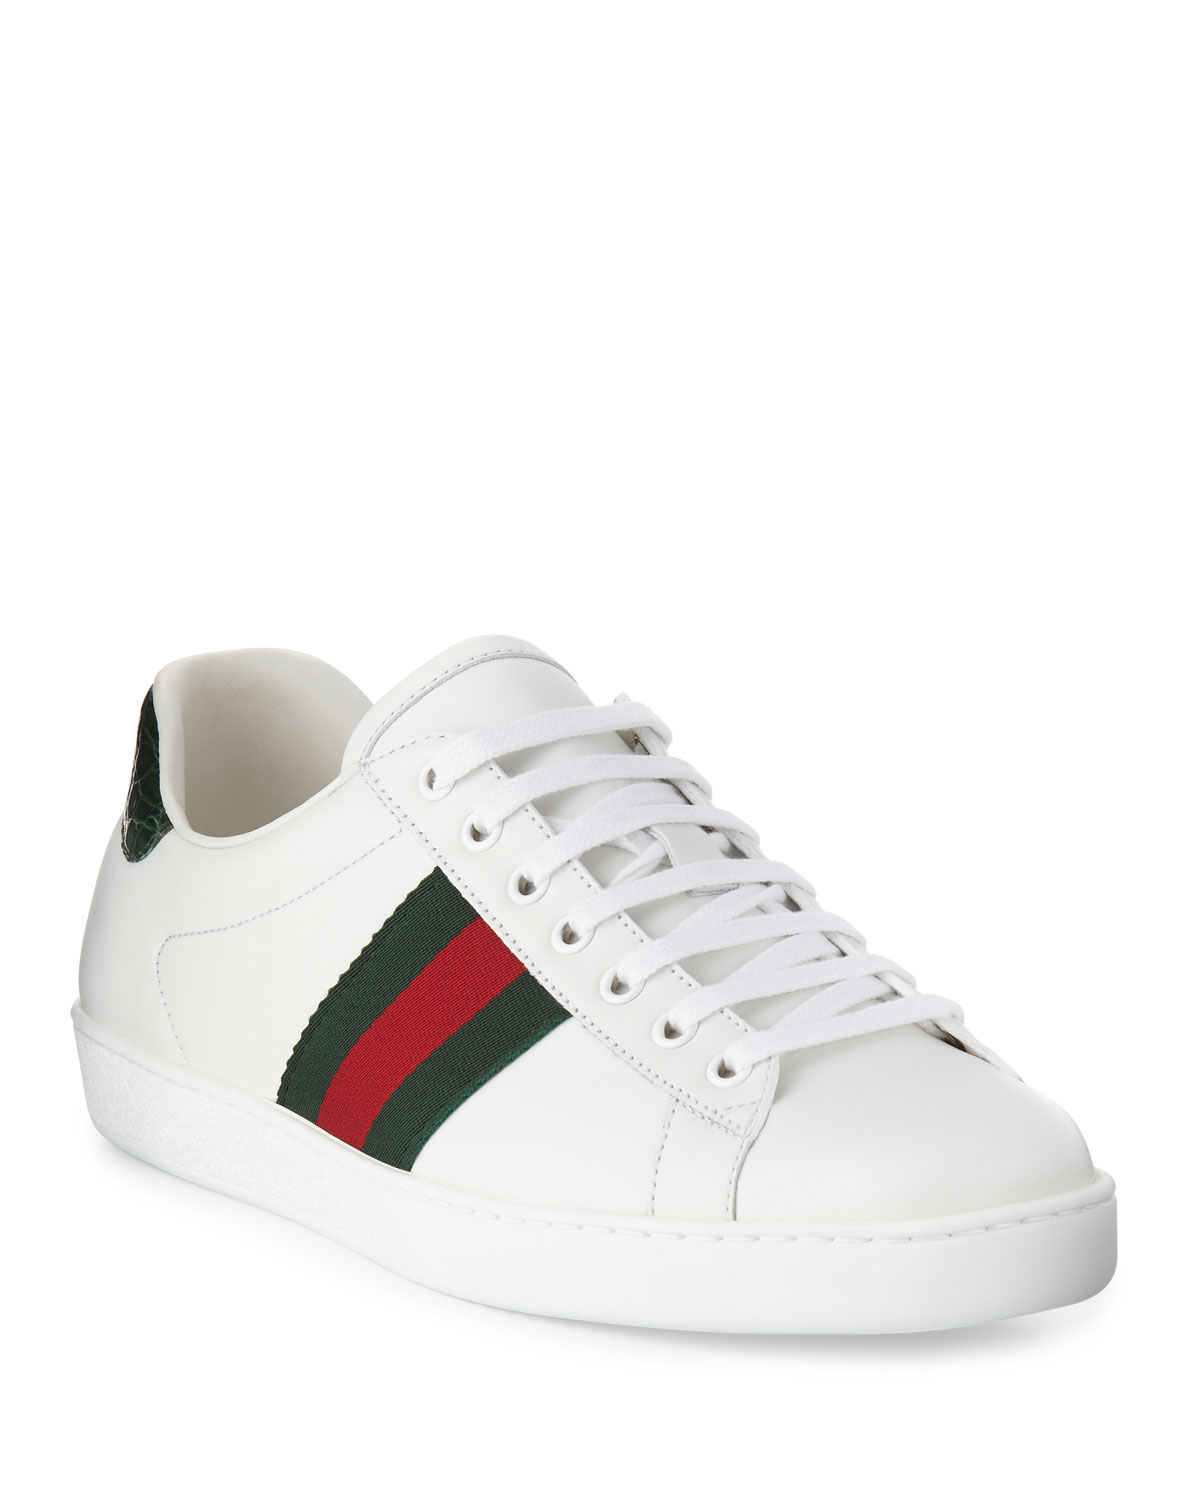 0e07f2ed6ad Gucci Men s New Ace Leather Low-Top Sneakers